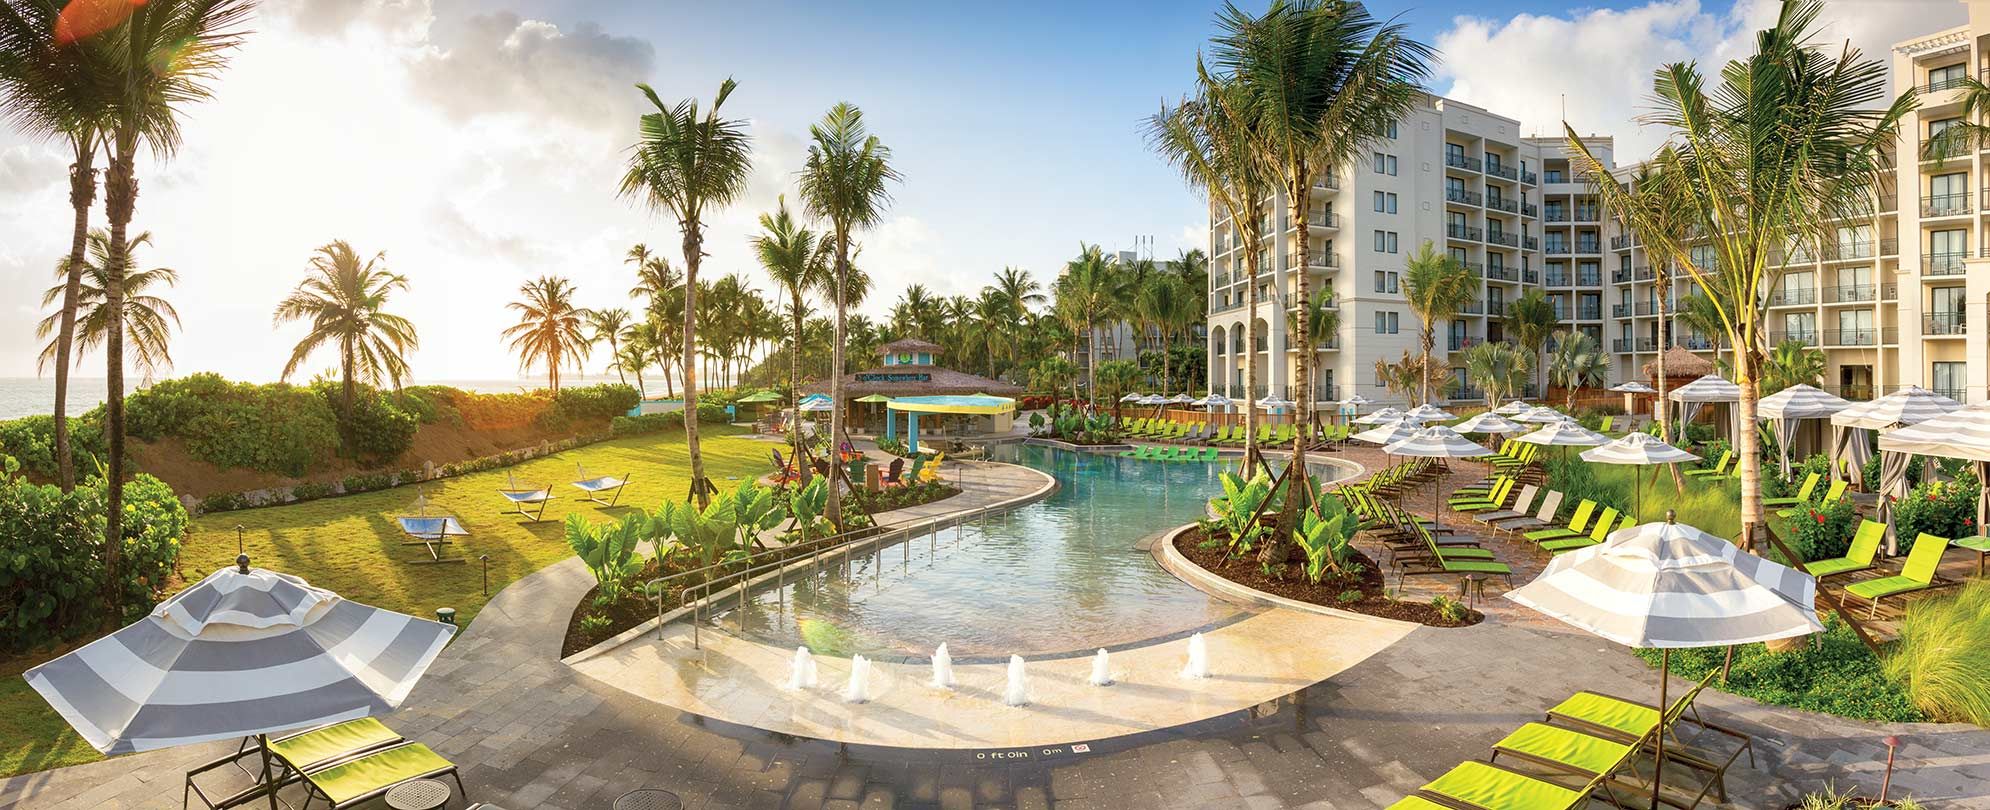 A zero-entry pool with fountains at Margaritaville Vacation Club by Wyndham - Rio Mar, an oceanfront timeshare resort.